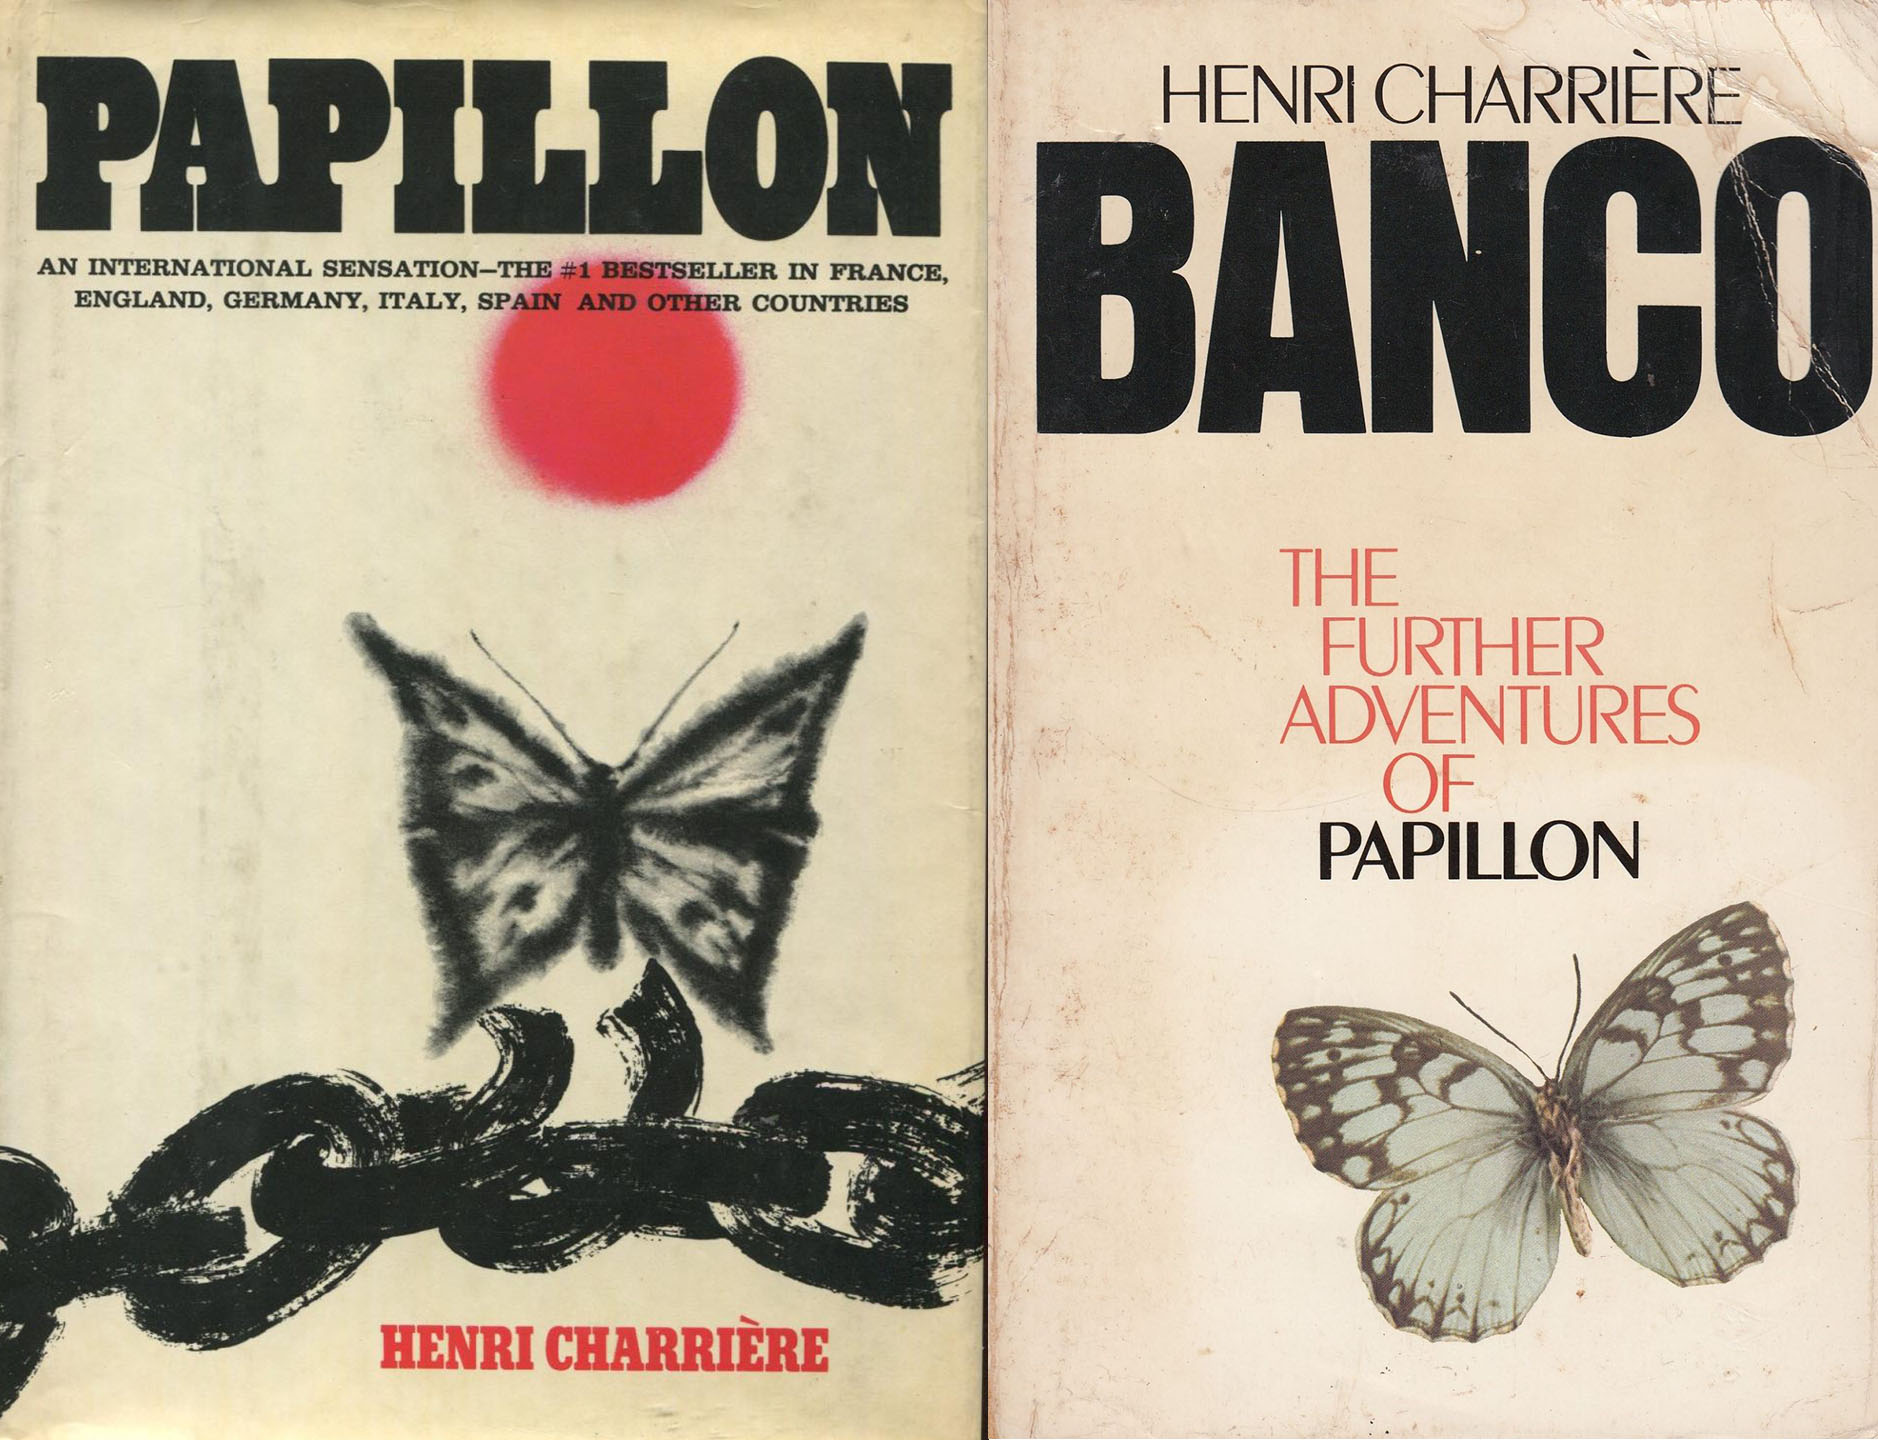 Finding the heart of Papillon